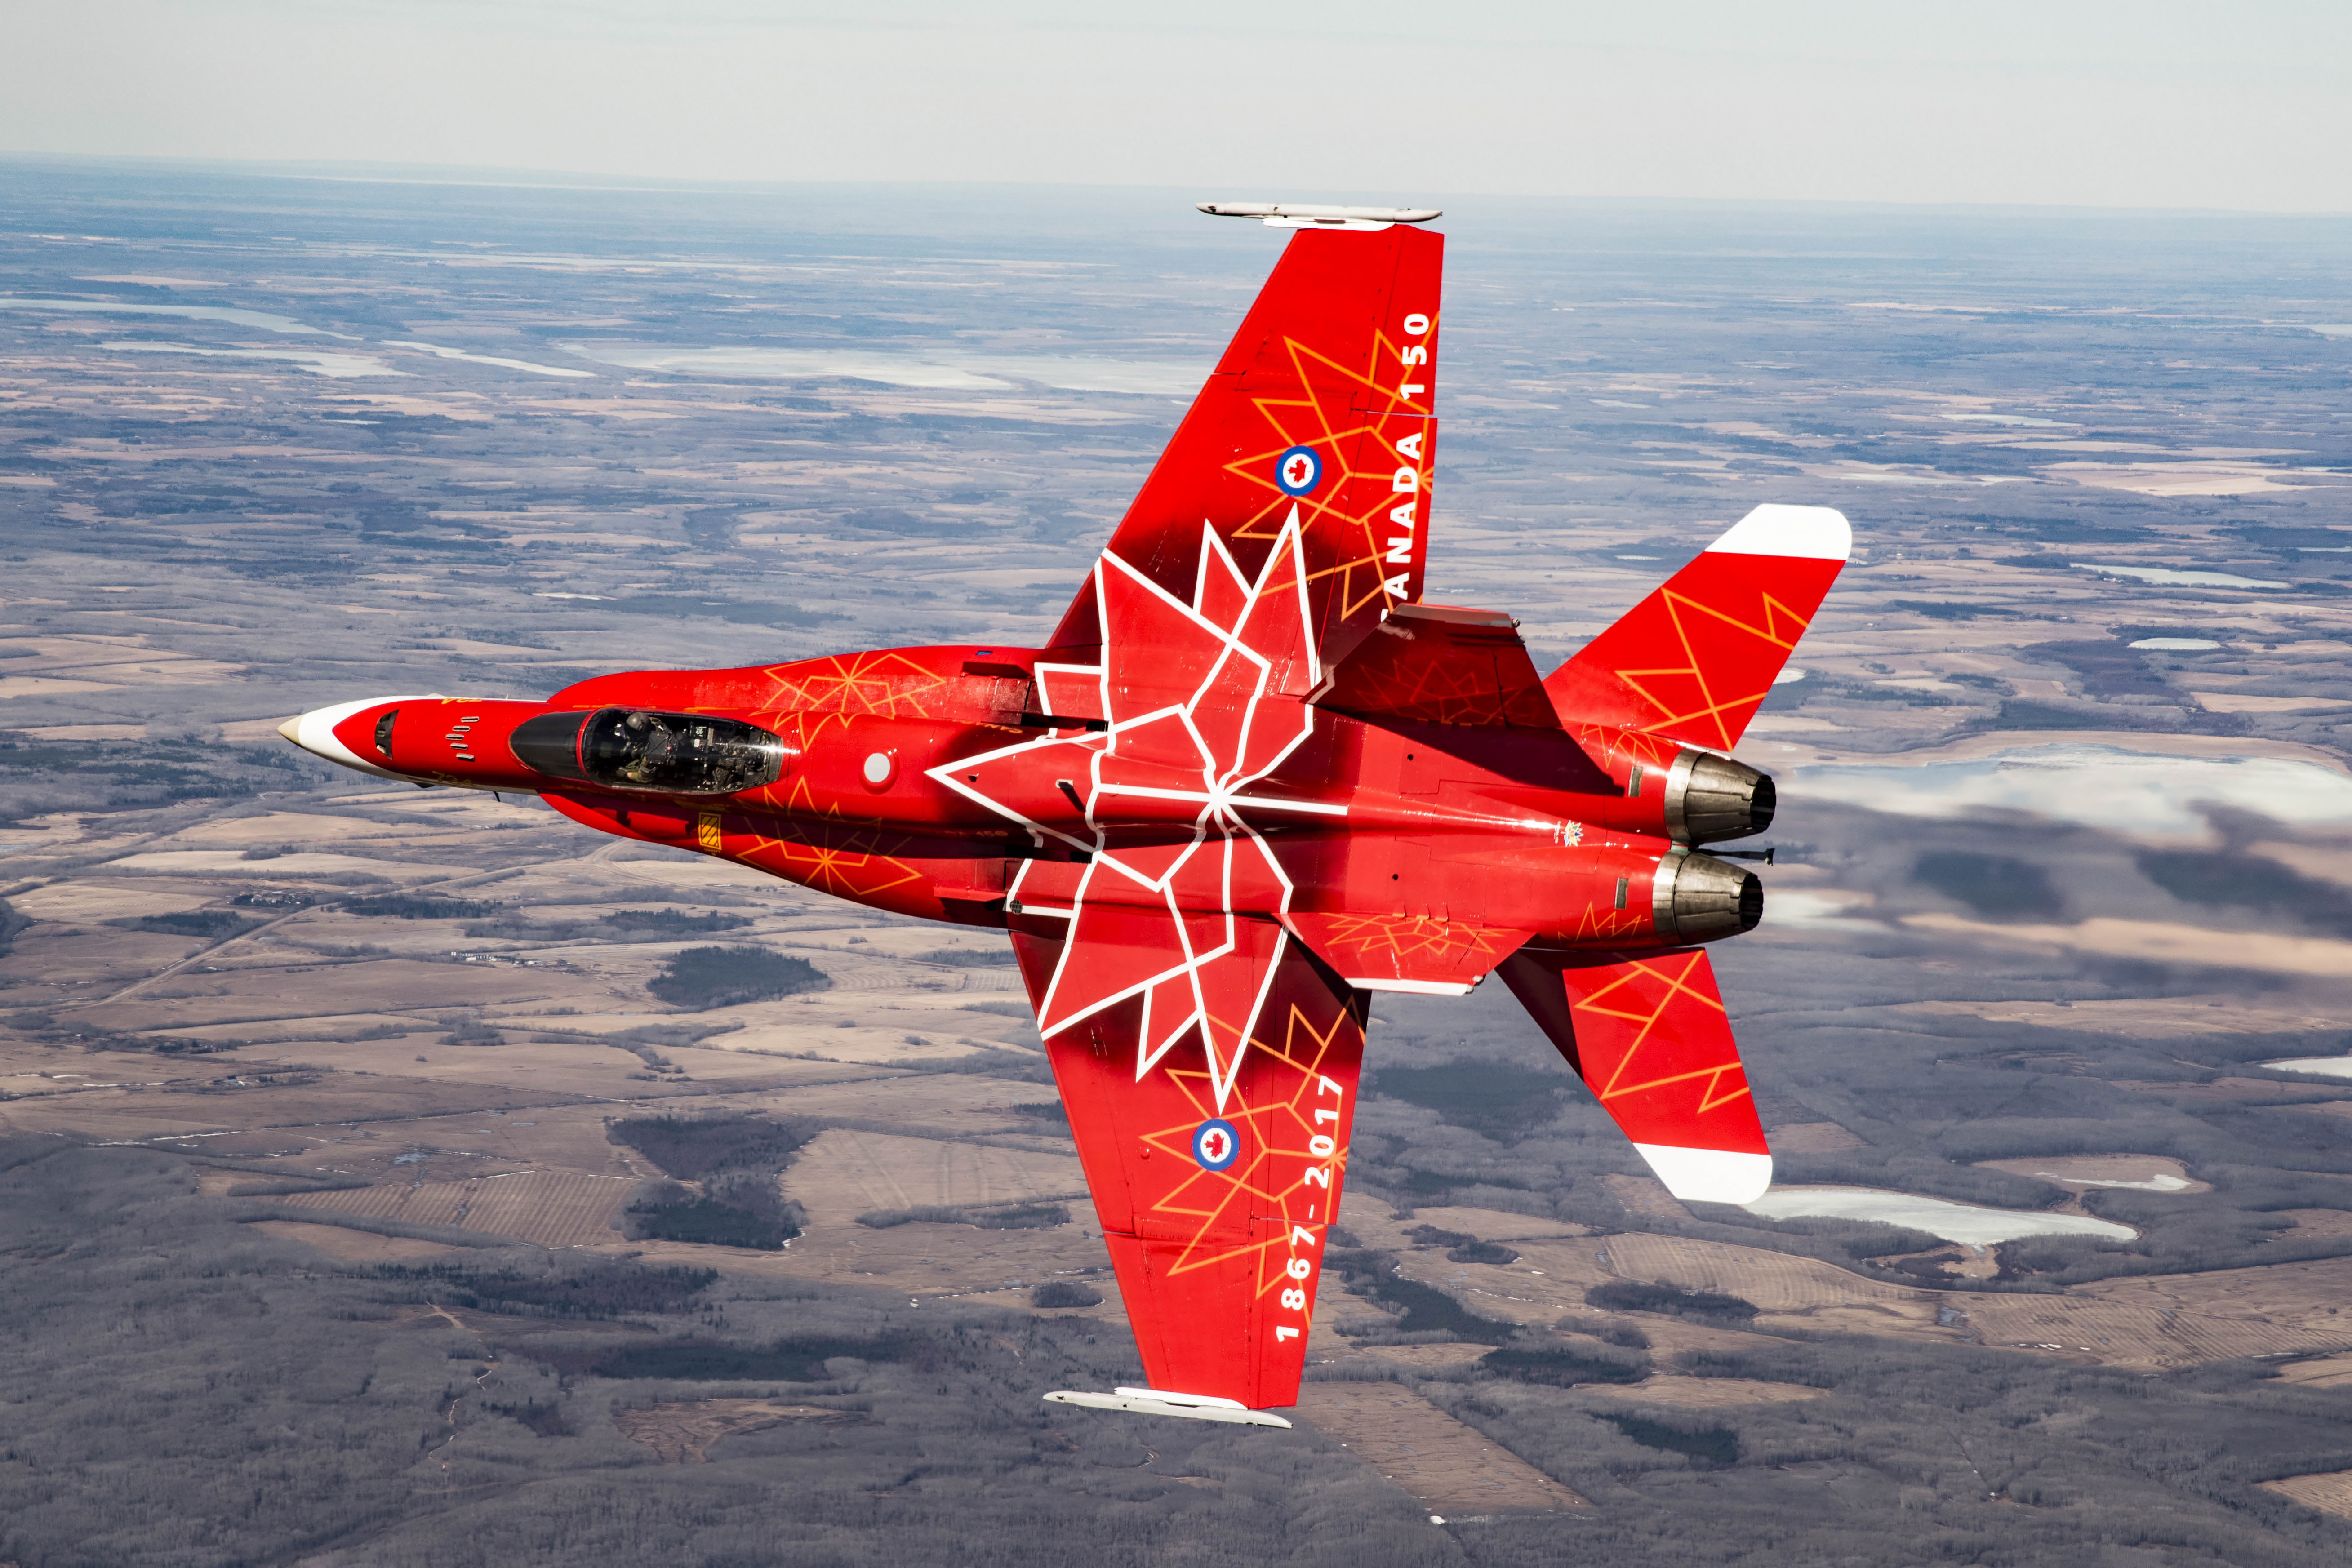 The 2017 CF-18 Demonstration Hornet. PHOTO: Corporal Manuela Berger, CK-01-2017-0278-011